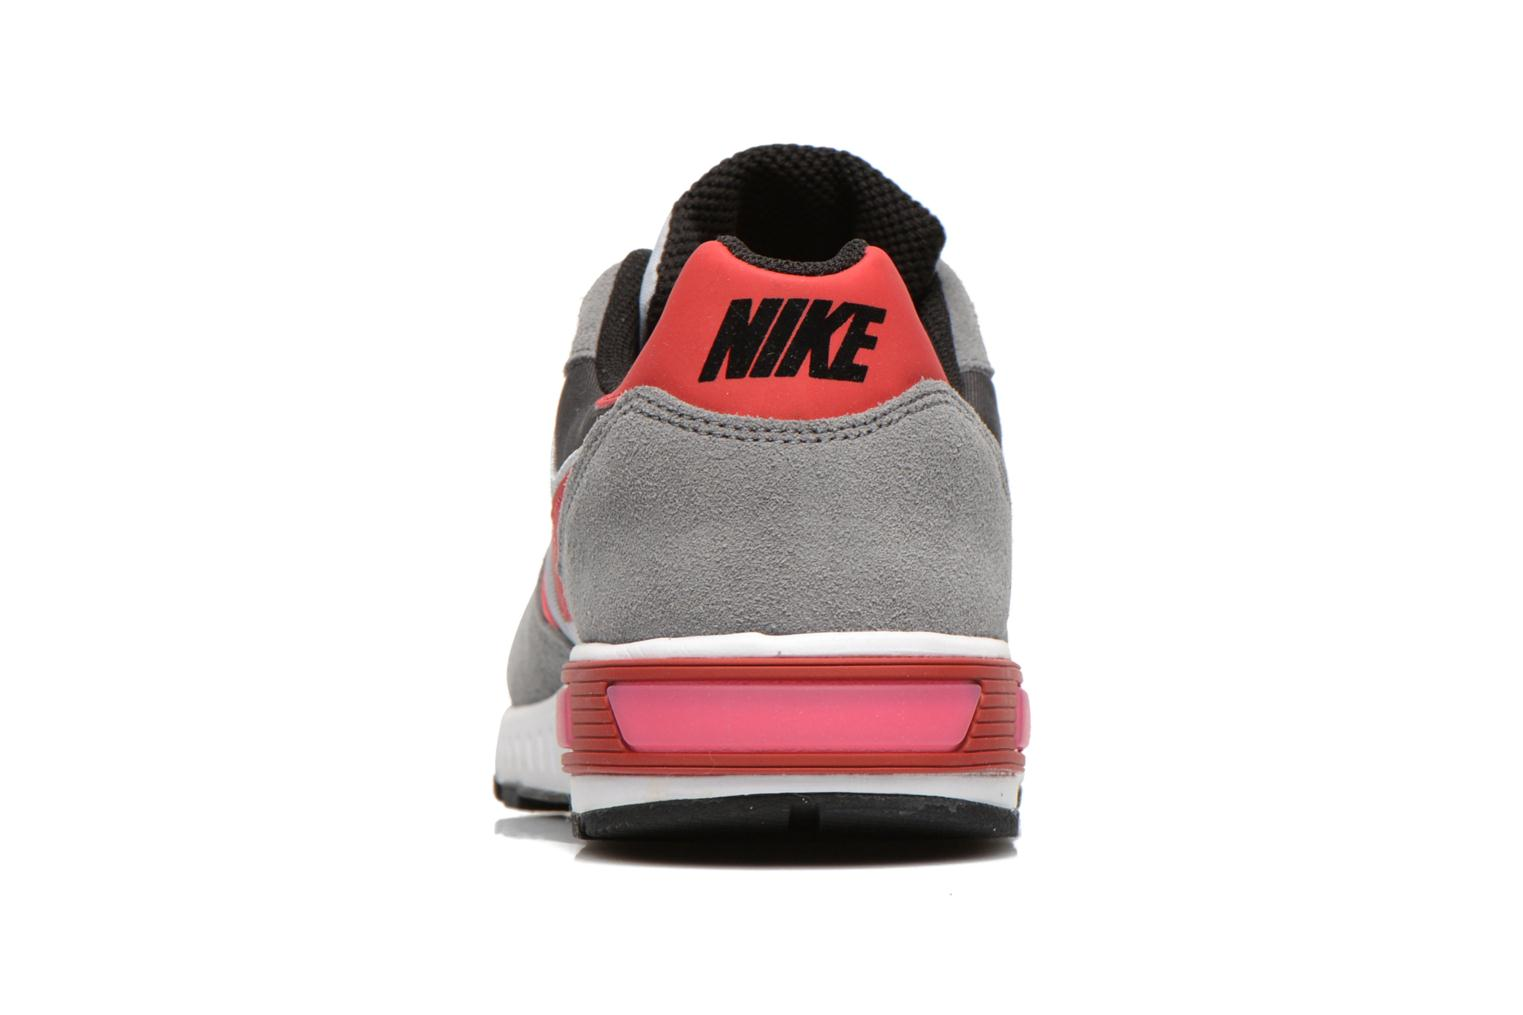 NIKE NIGHTGAZER (GS) Wolf Grey/Gym Red-Cl Gry-White